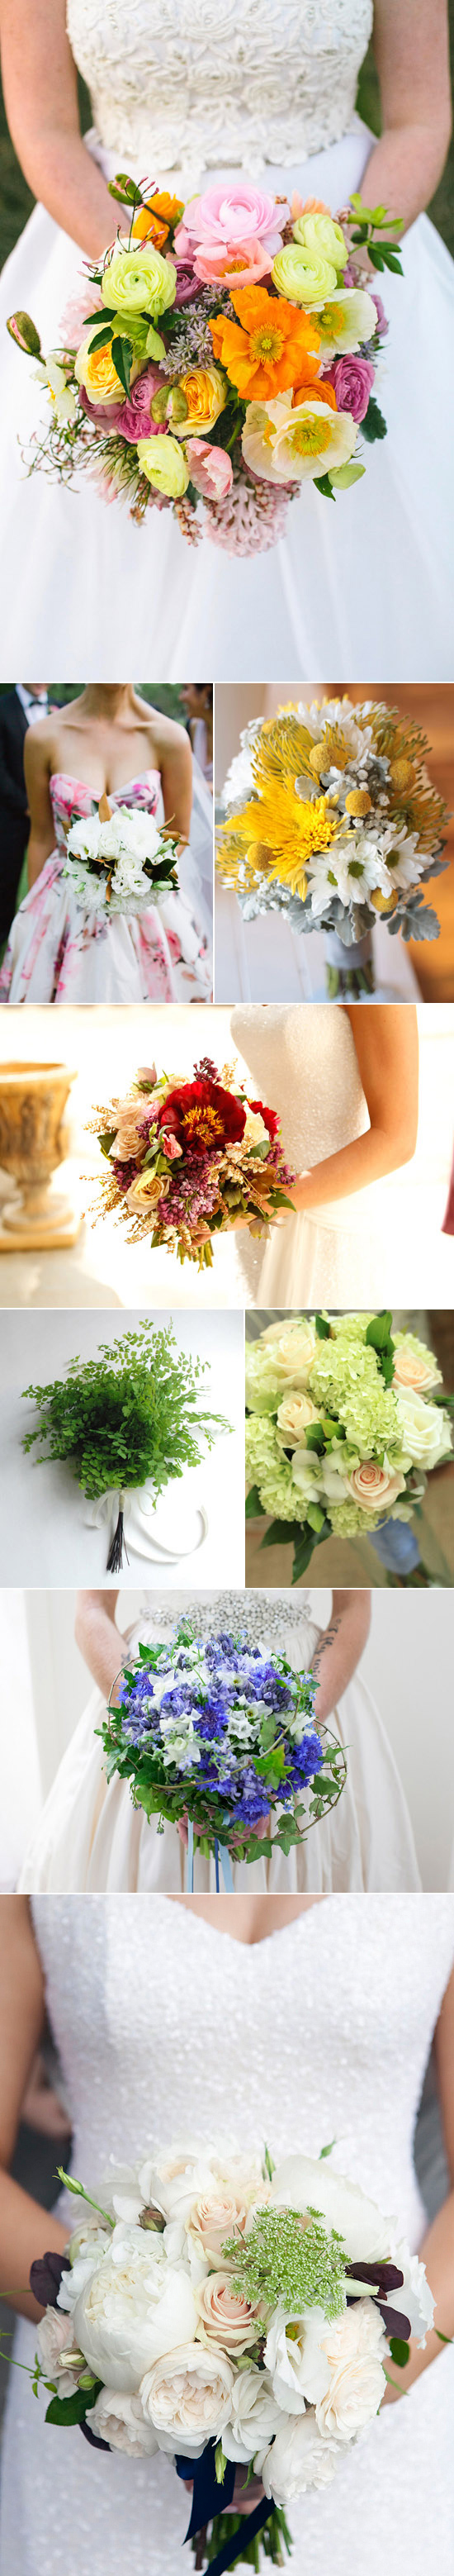 Spring wedding bouquets 1 Spring Wedding Bouquets